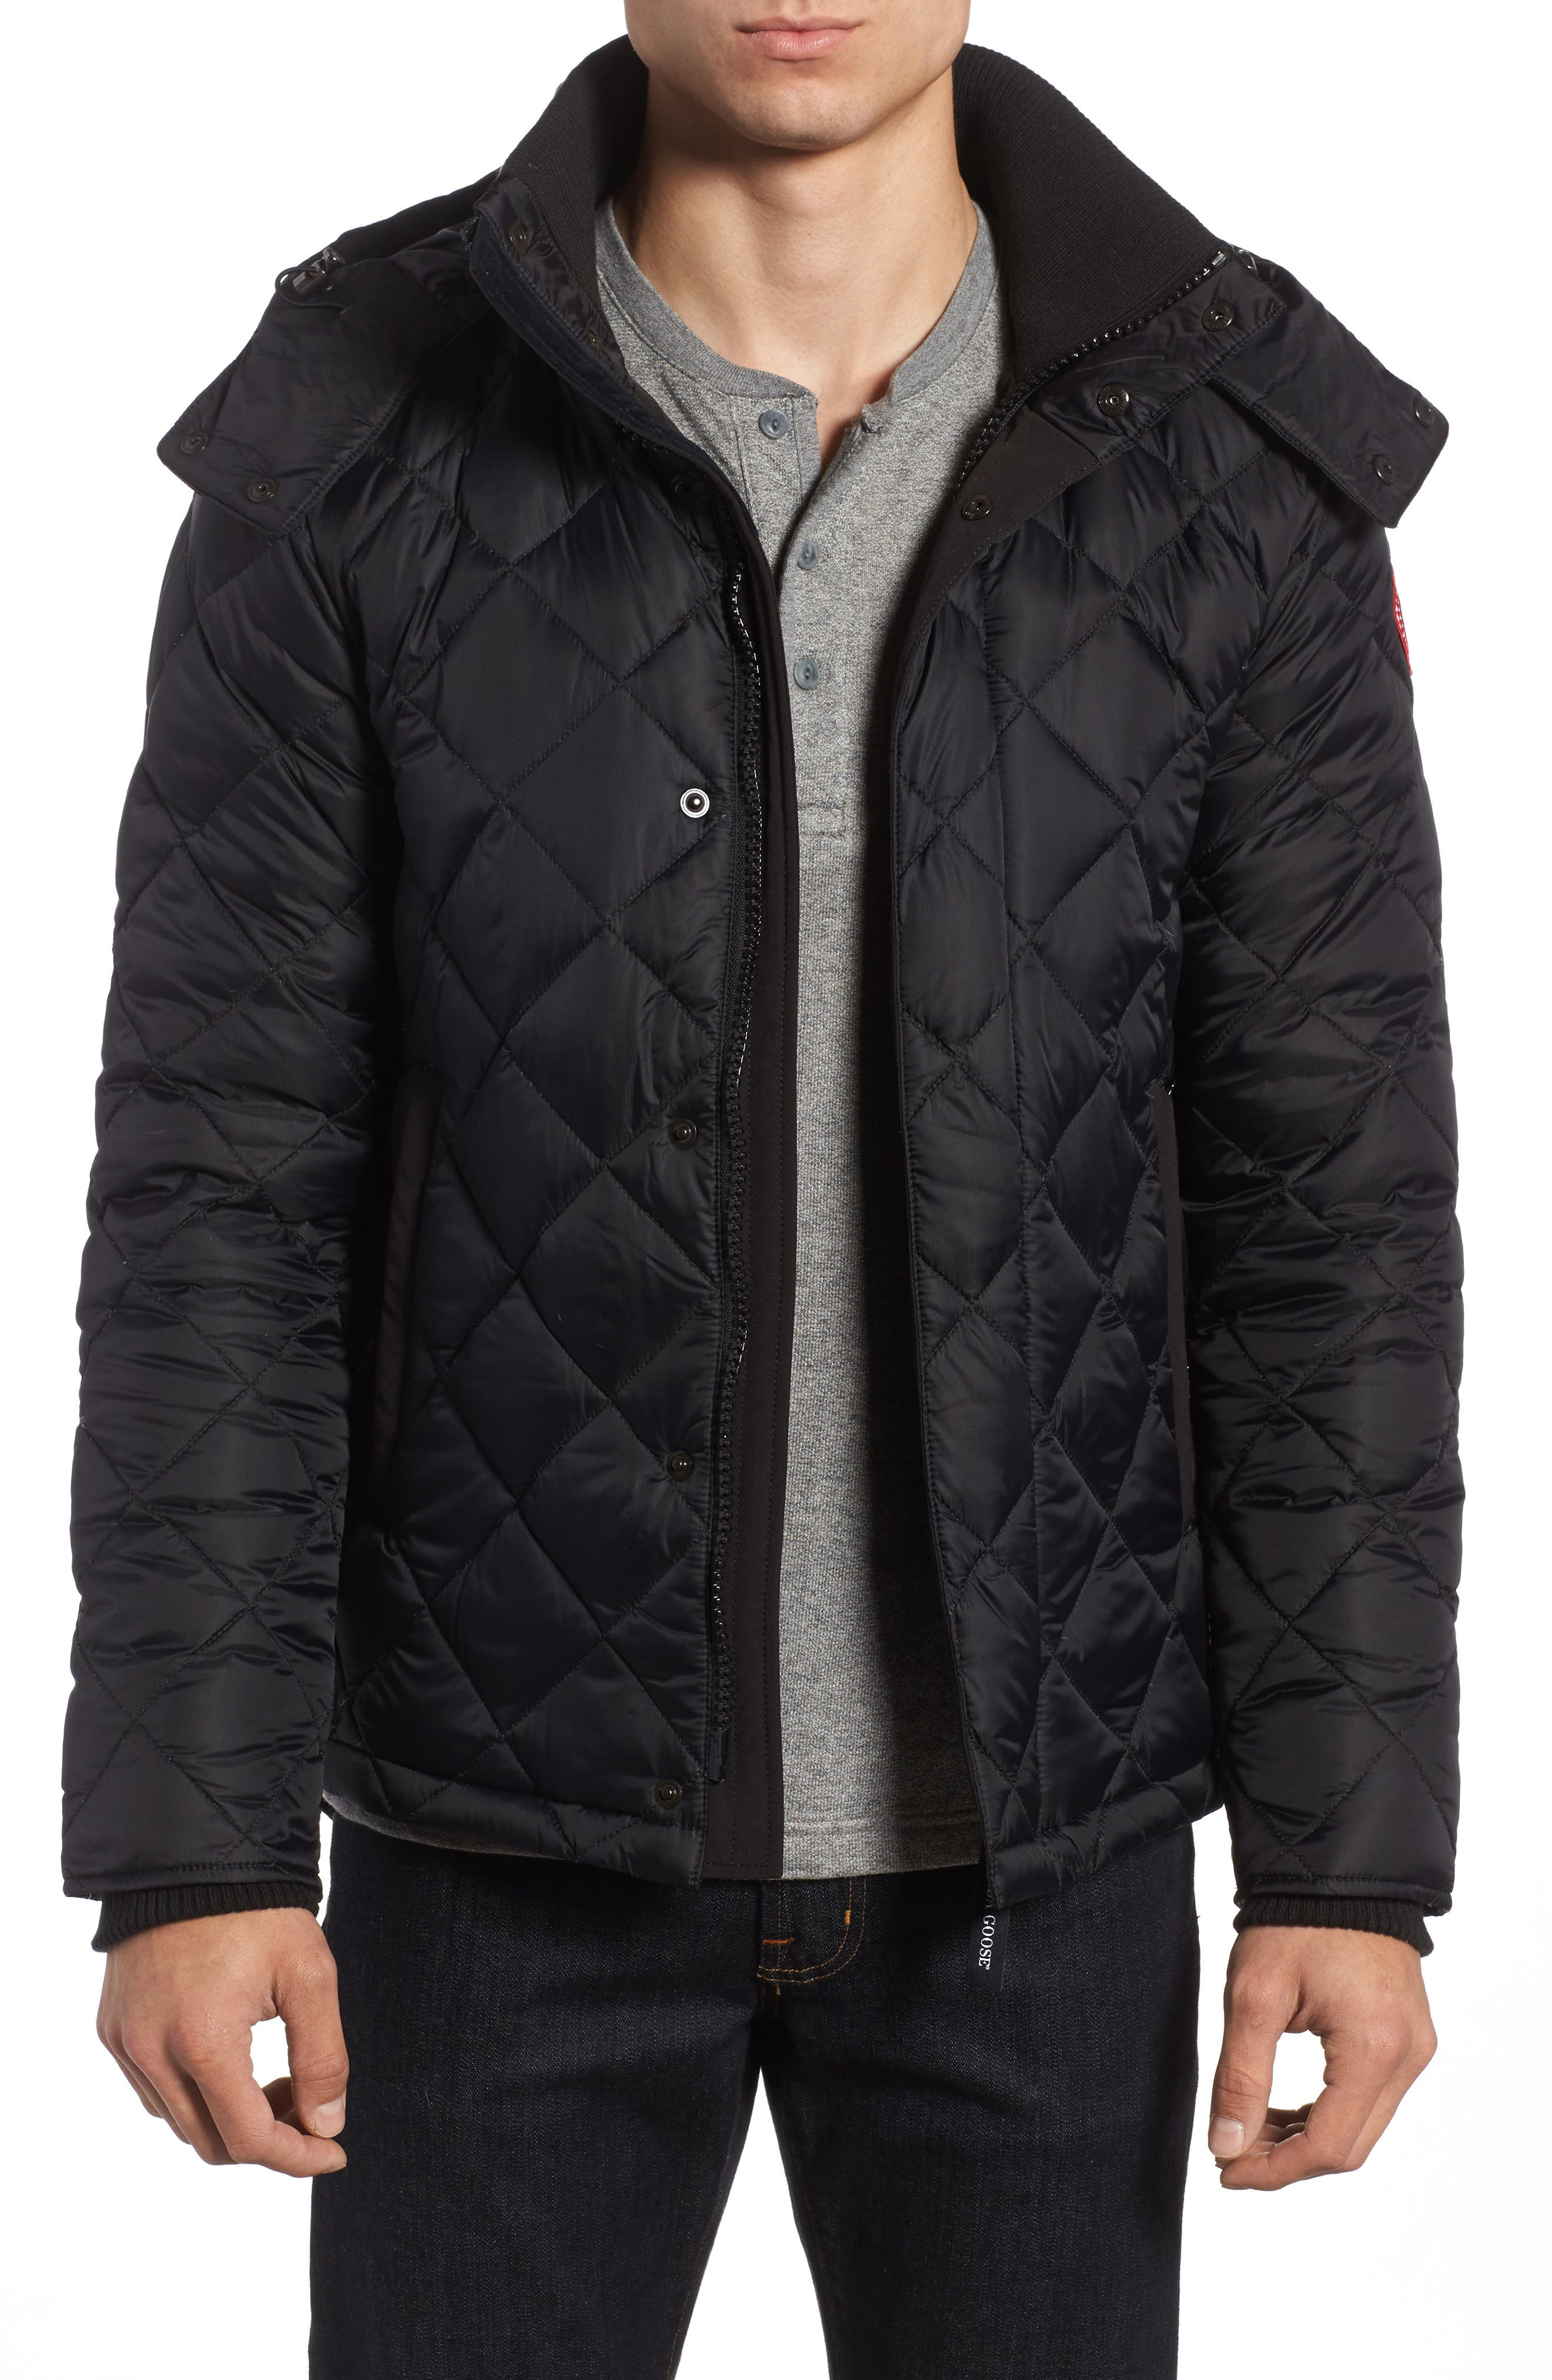 Hendriksen Quilted Down Coat,                             Main thumbnail 1, color,                             Black